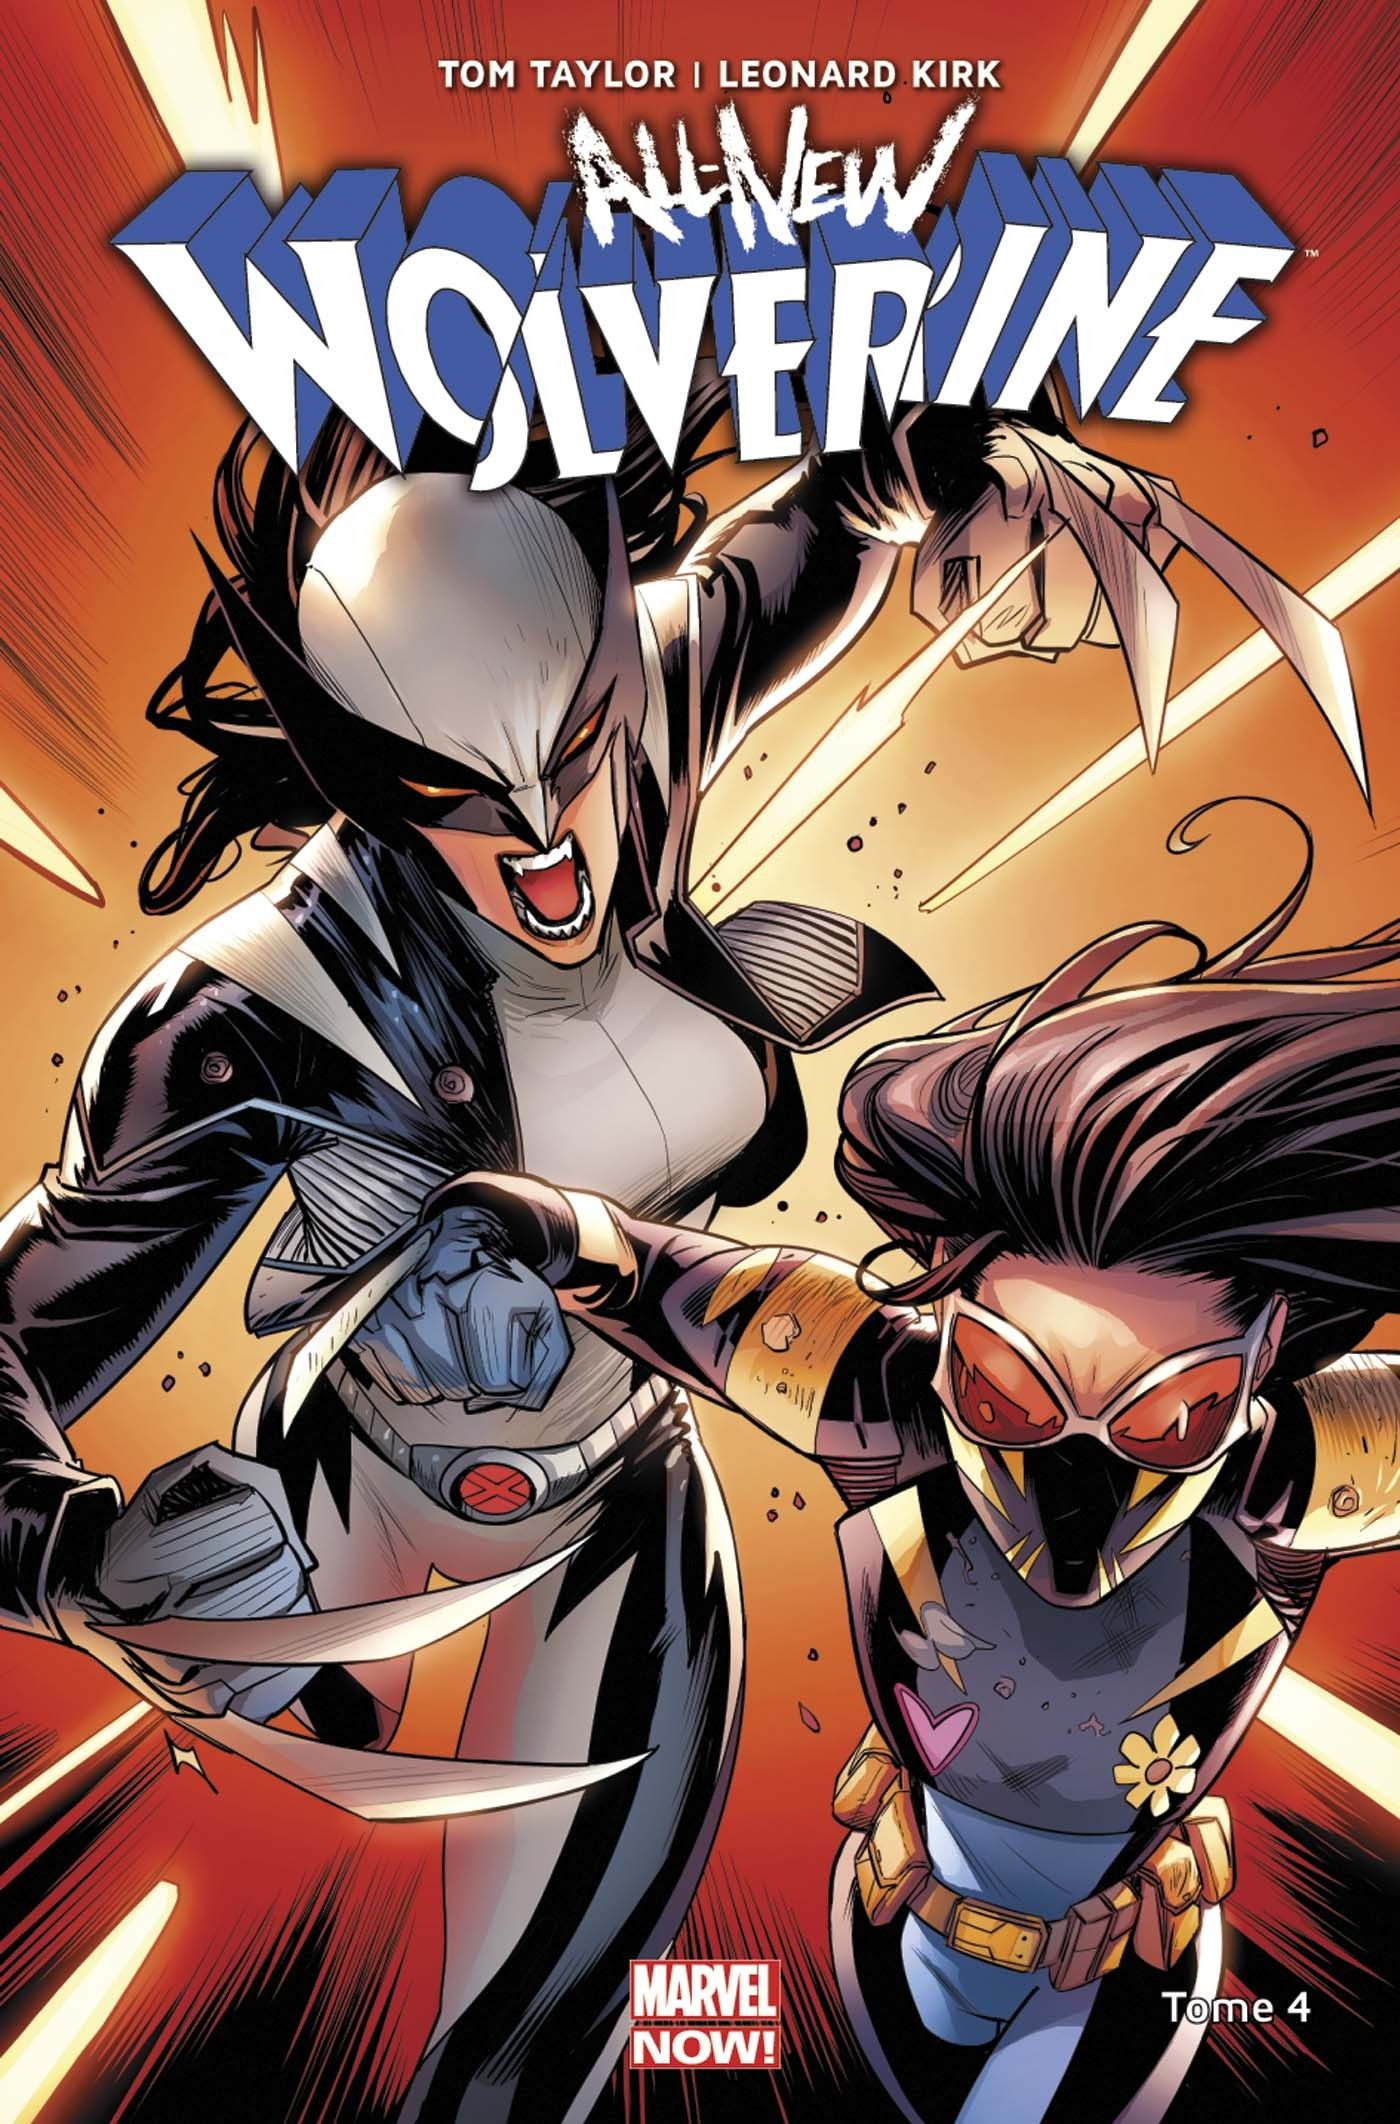 All New Wolverine 4 Immunisee Tom Taylor Leonard Kirk En 2020 Marvel Captain America Heroine